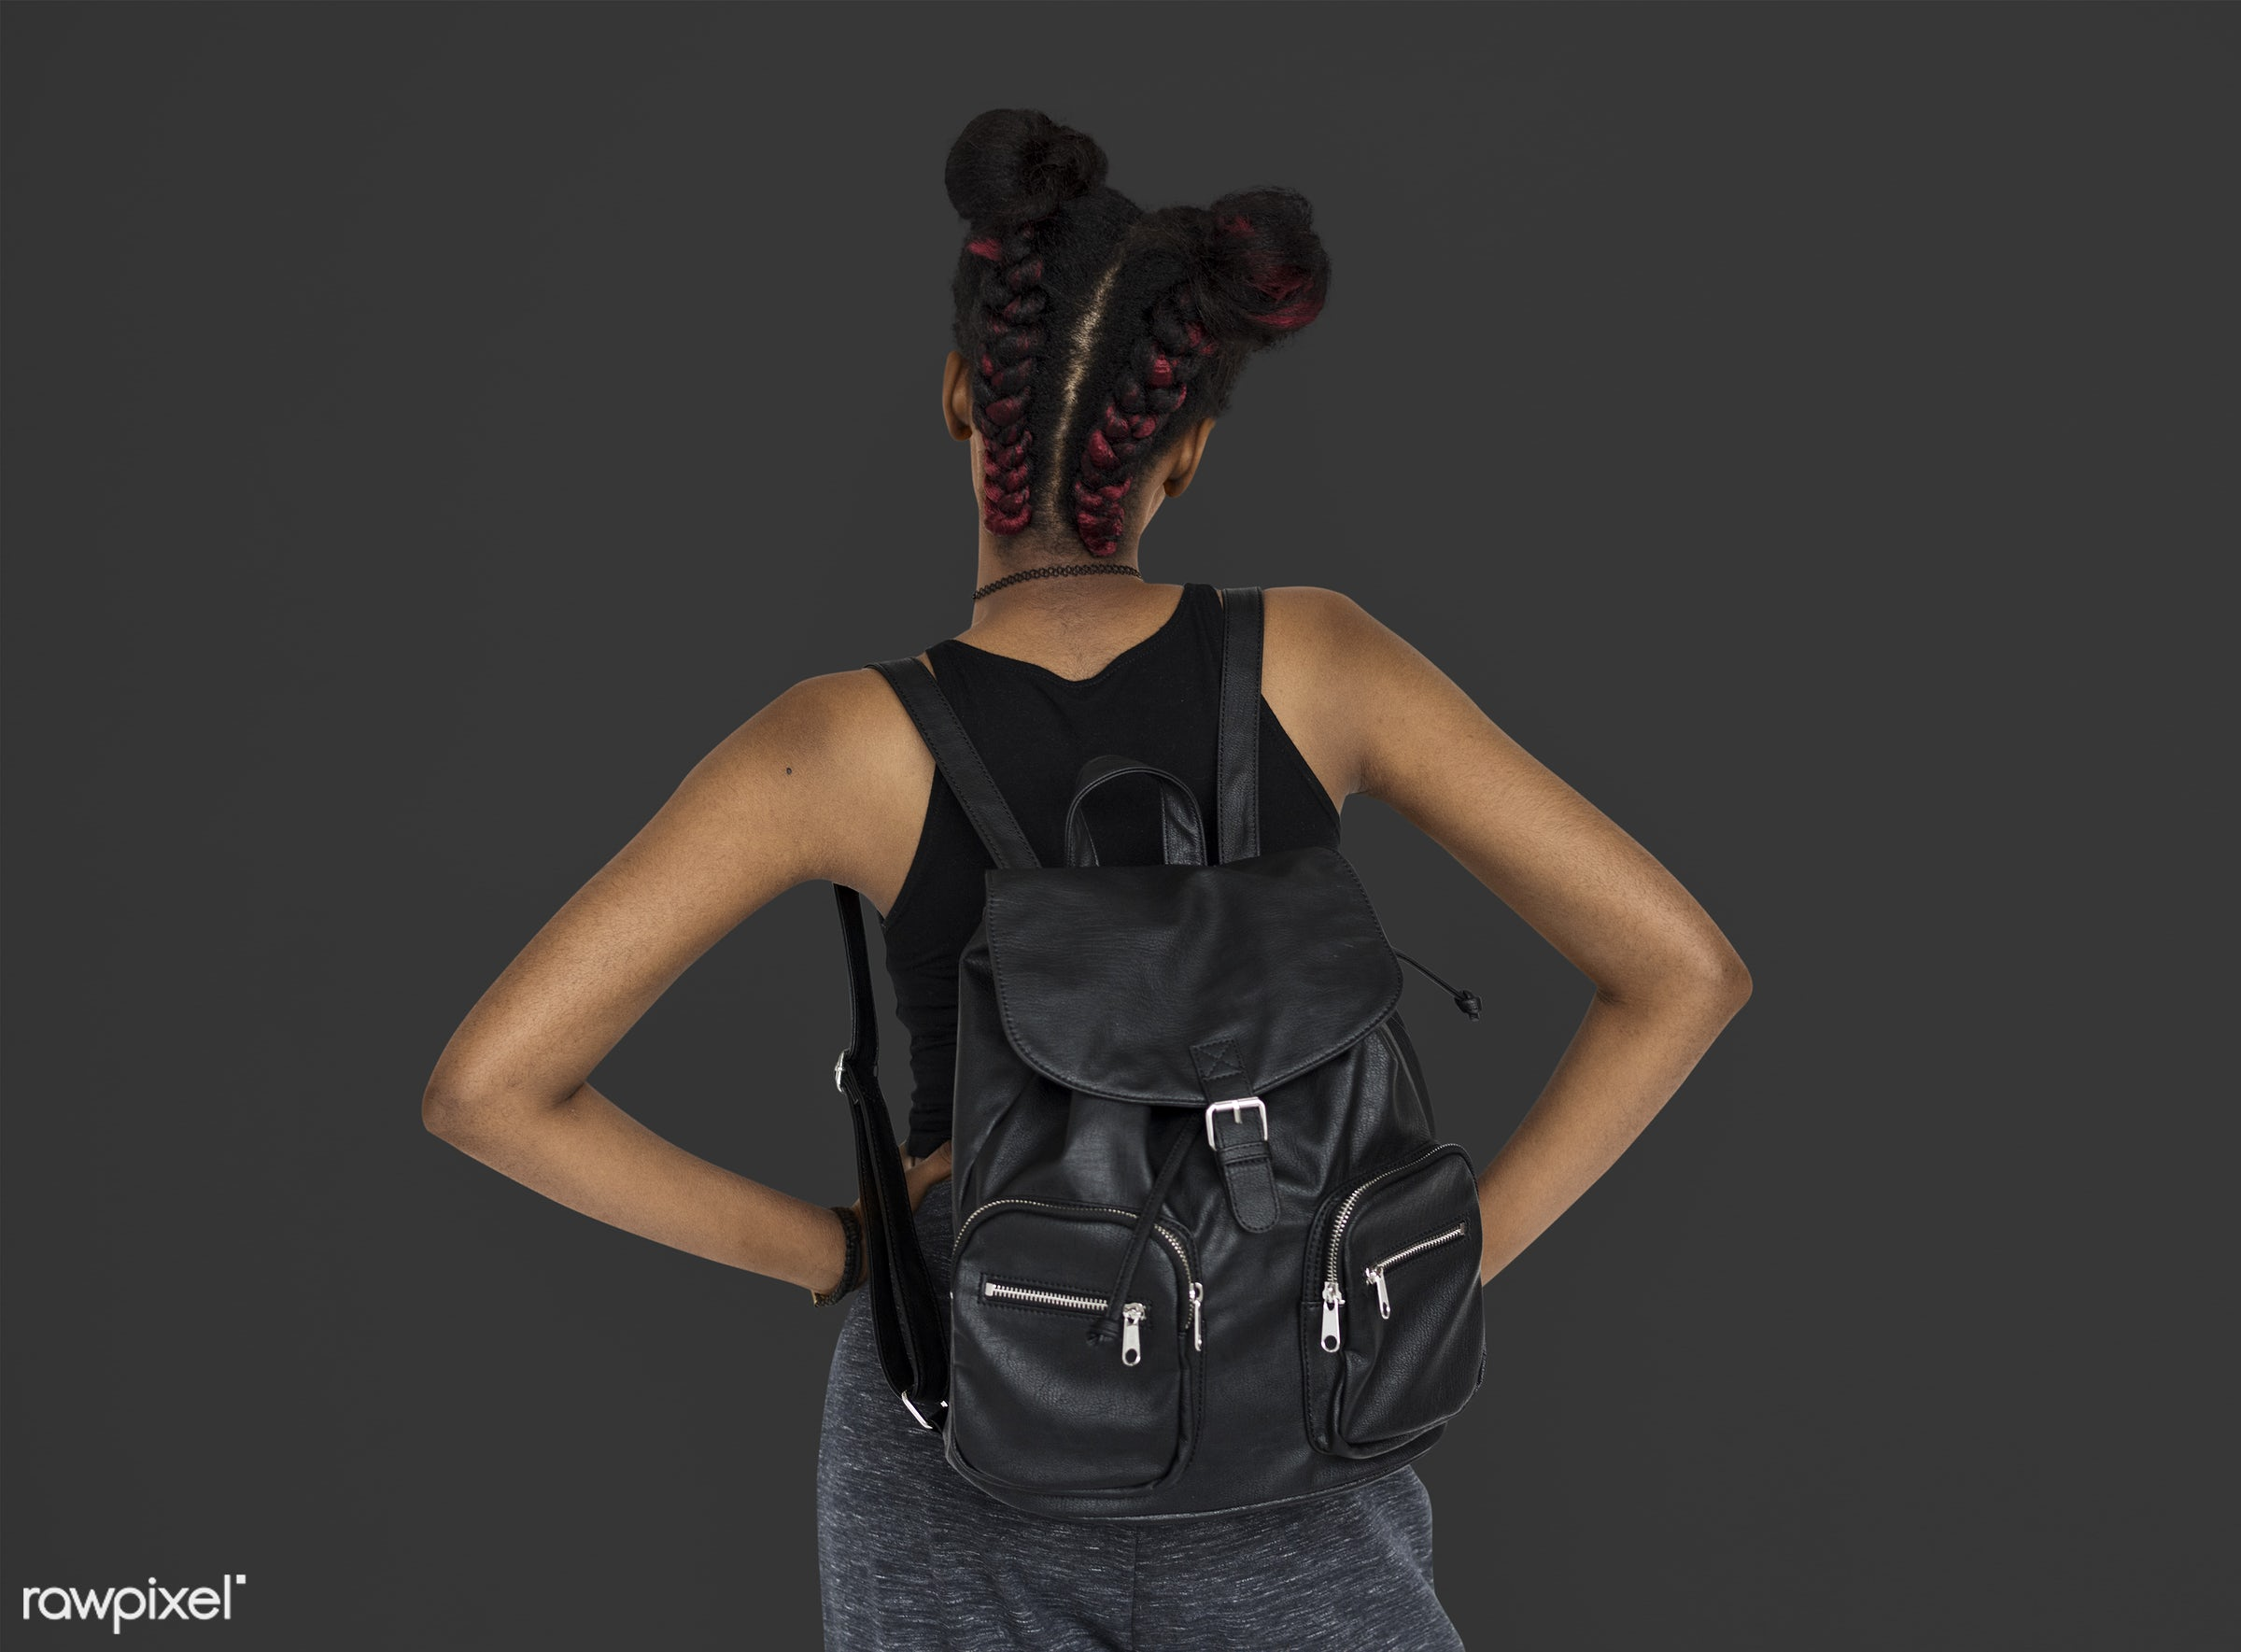 studio, person, african, people, girl, style, woman, lifestyle, casual, backpack, grey, abstract, isolated, rear view, buns...